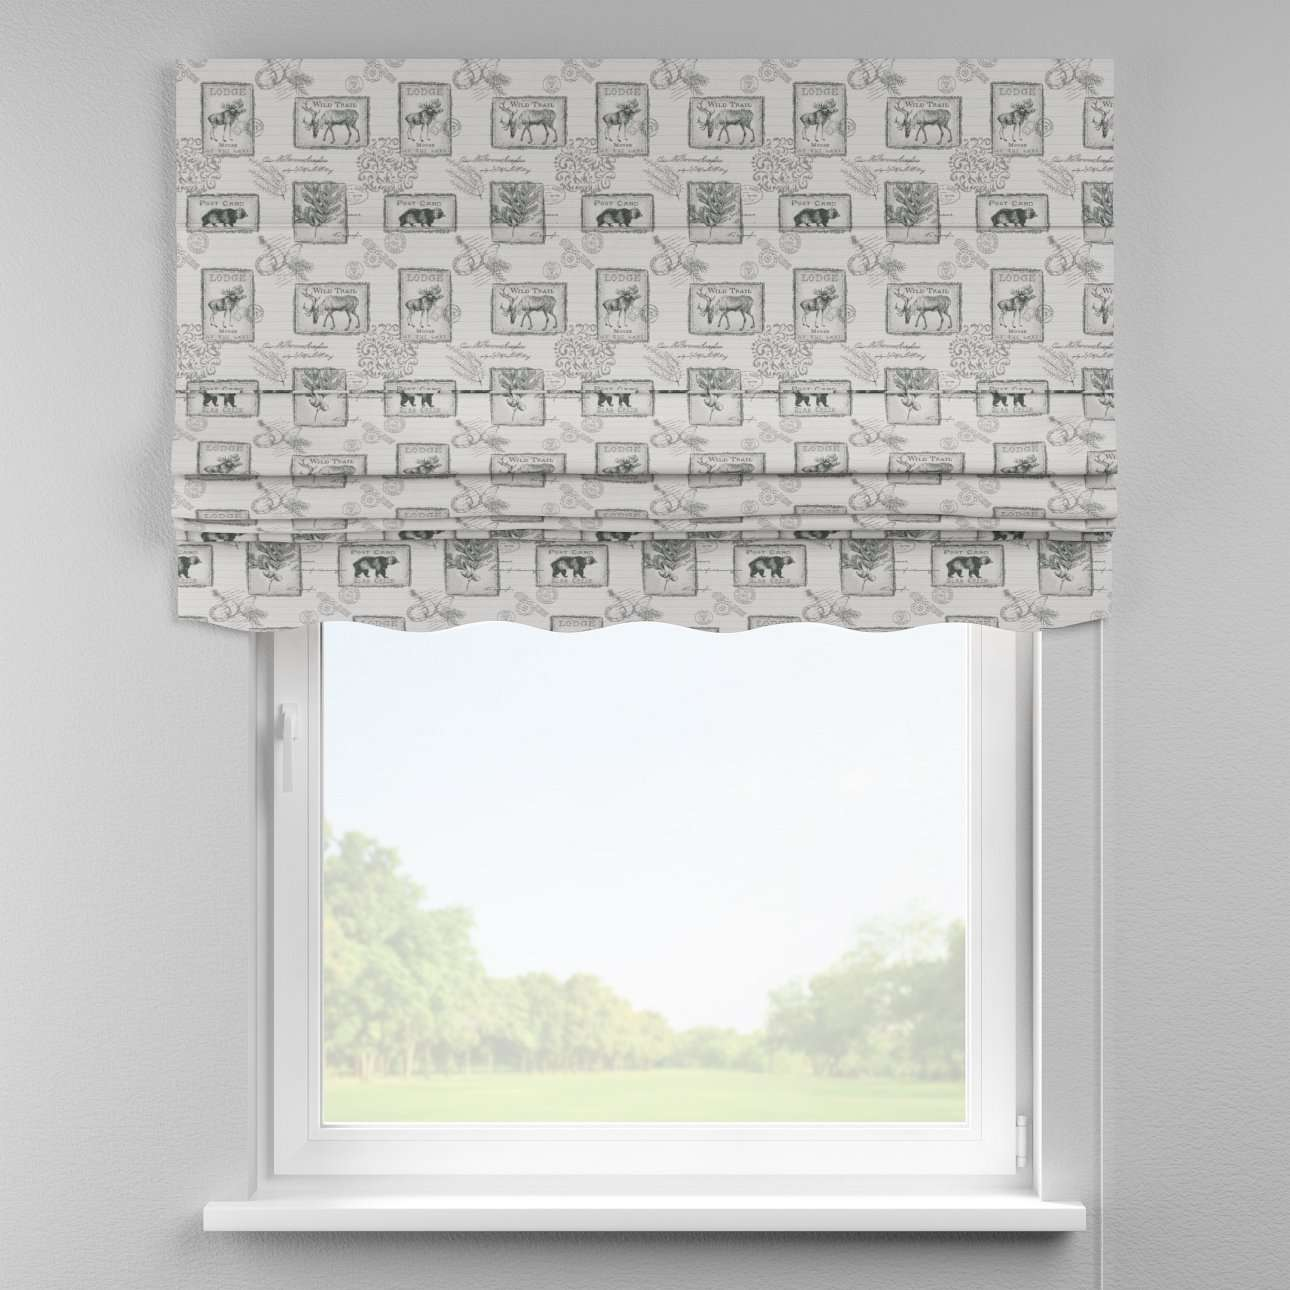 Florence roman blind  80 x 170 cm (31.5 x 67 inch) in collection Nordic, fabric: 630-18